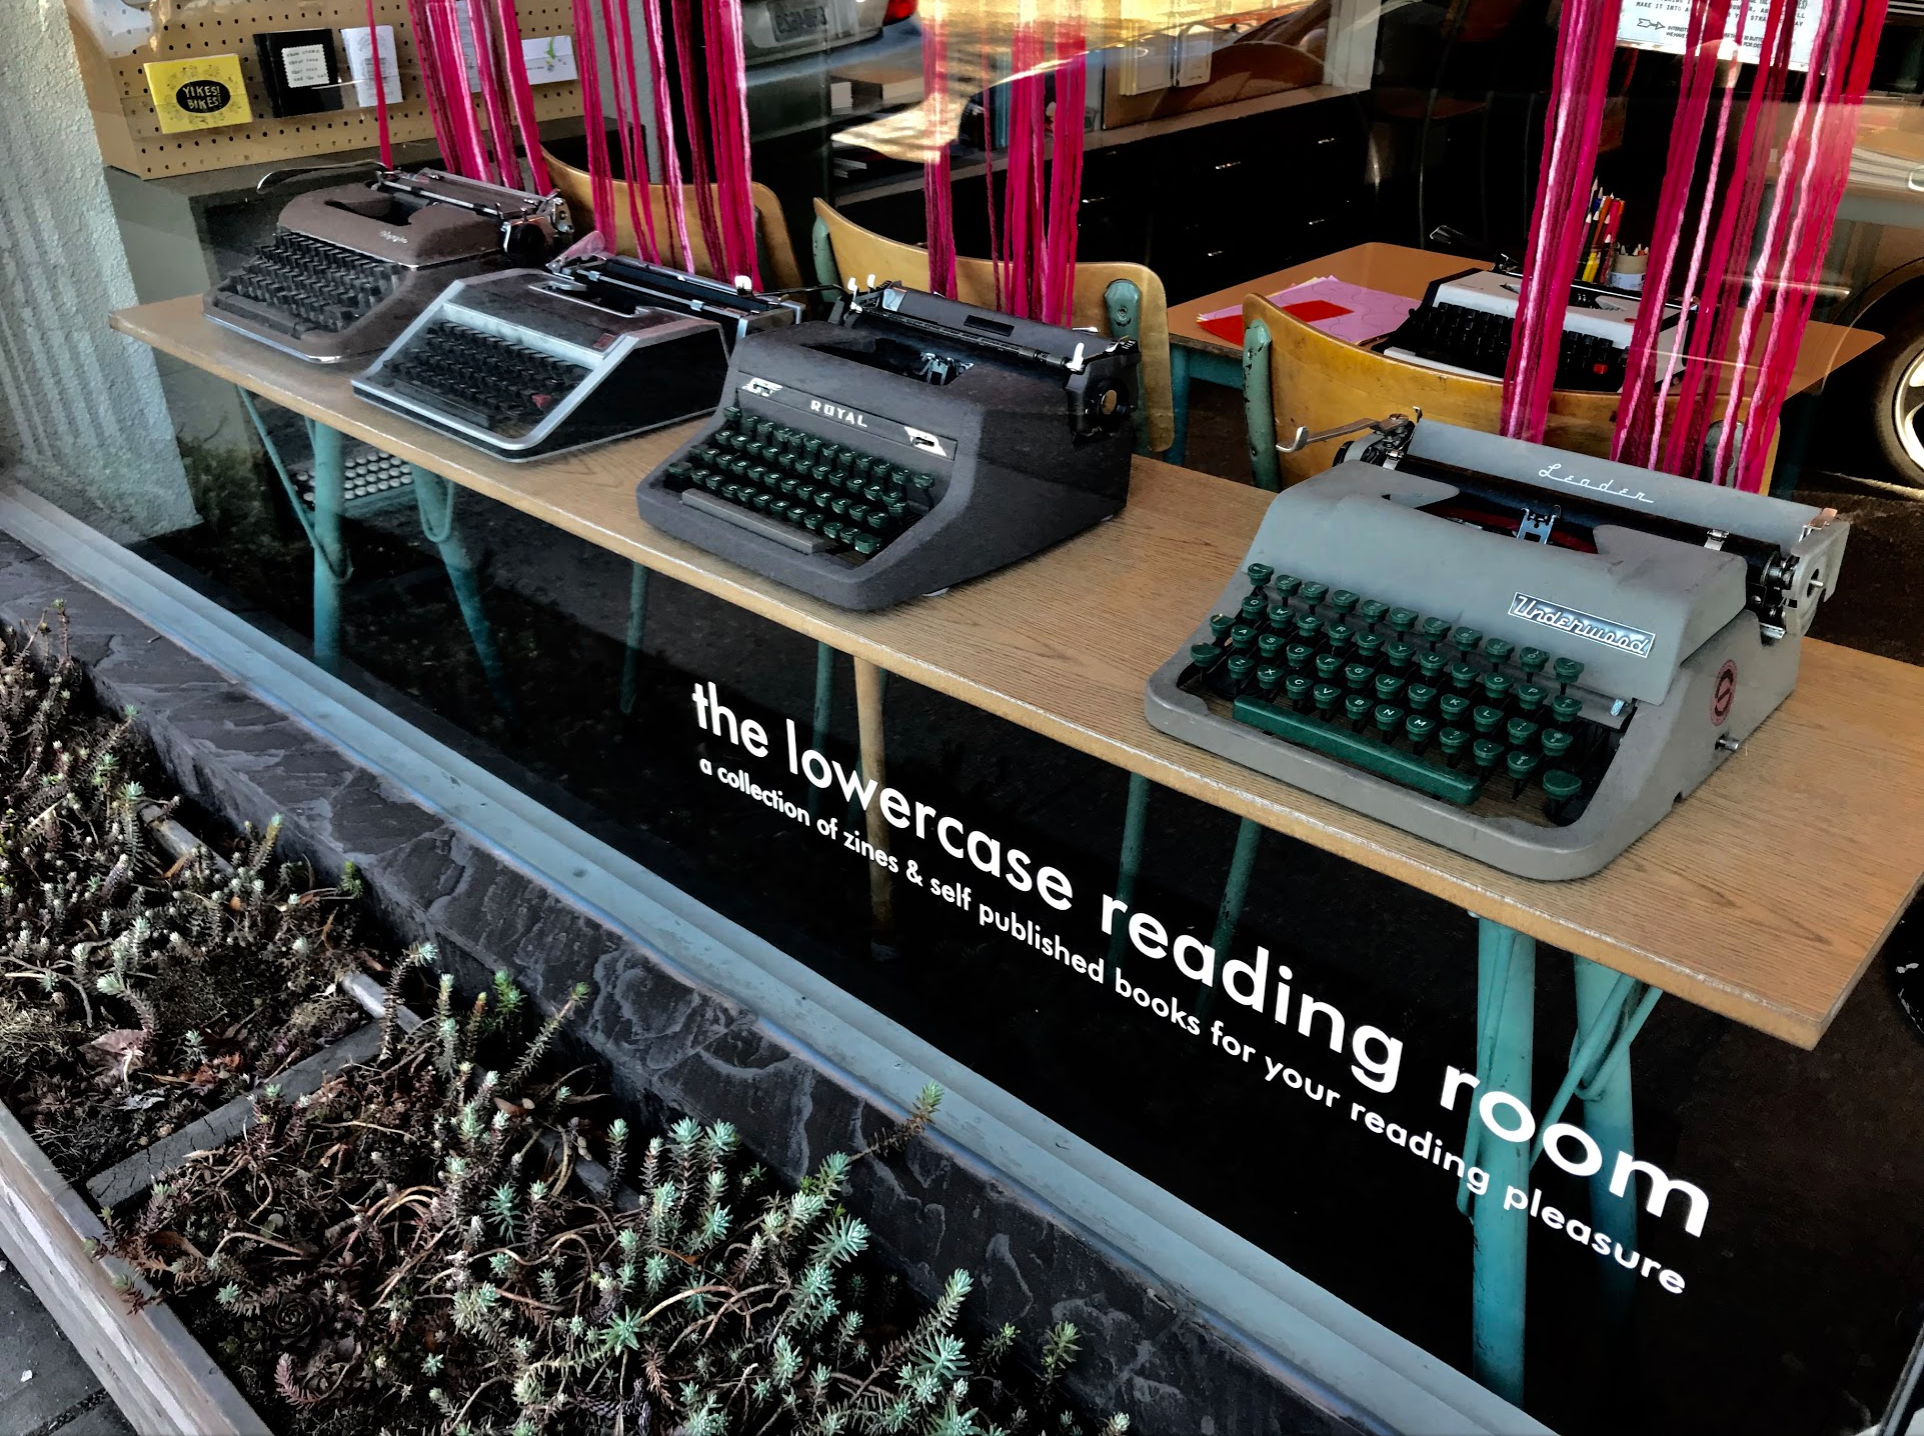 I counted 40+ typewriters at The Regional Assembly of Text stationary and card shop. They actually have a free night when they let people use the typewriters to create their own prose. I have added it to my calendar.